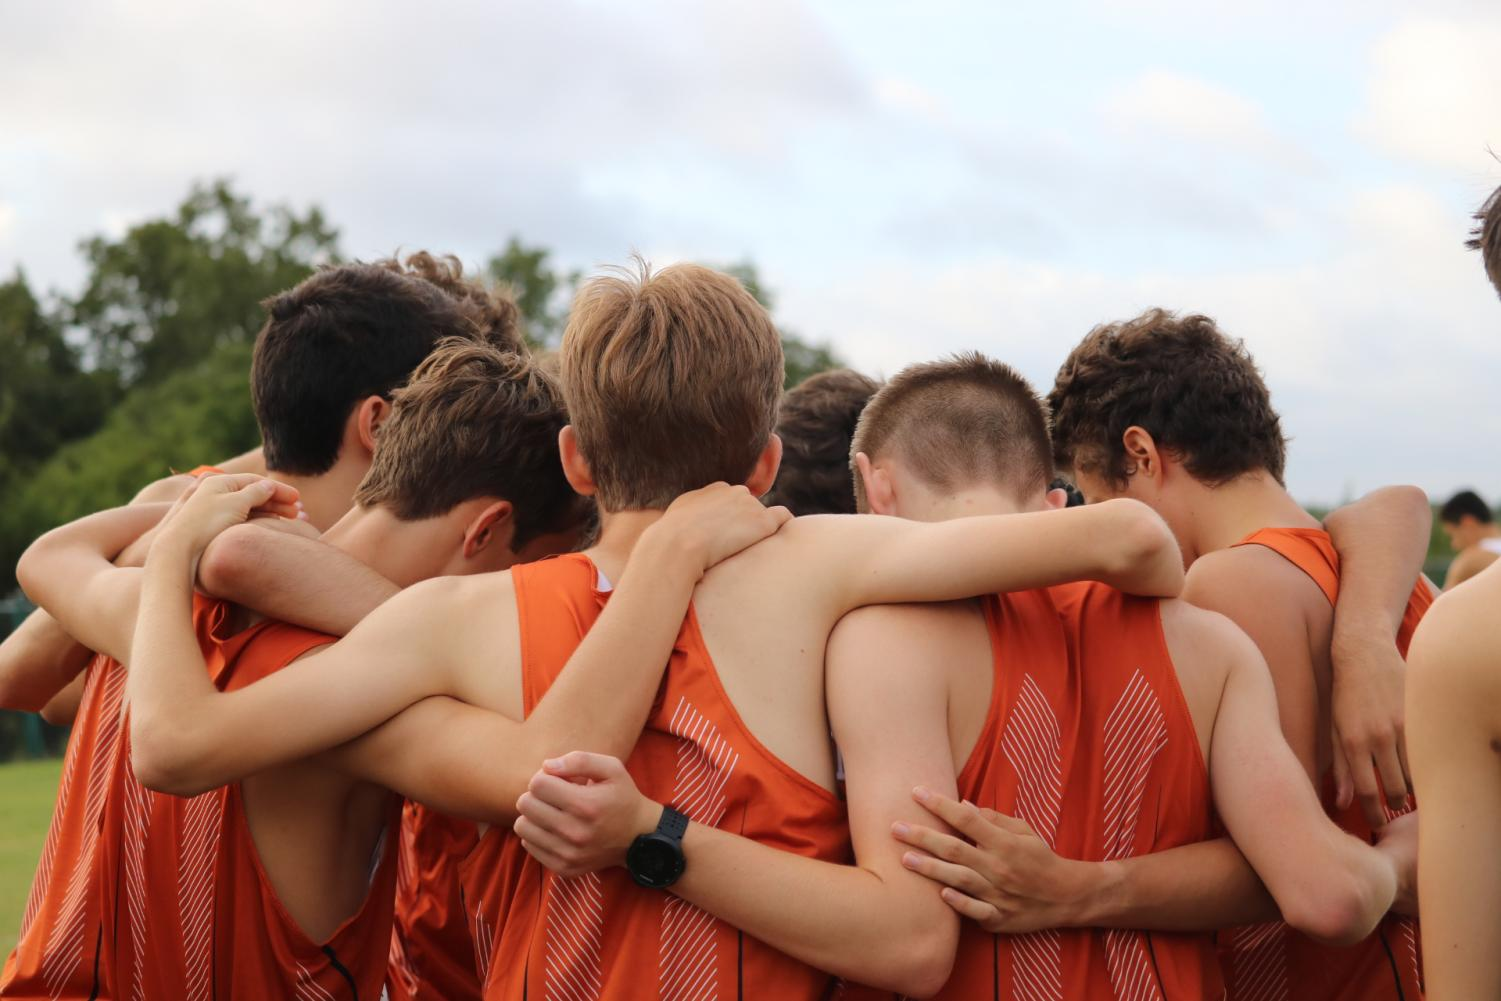 The+boys+huddle+before+the+start+of+their+race.